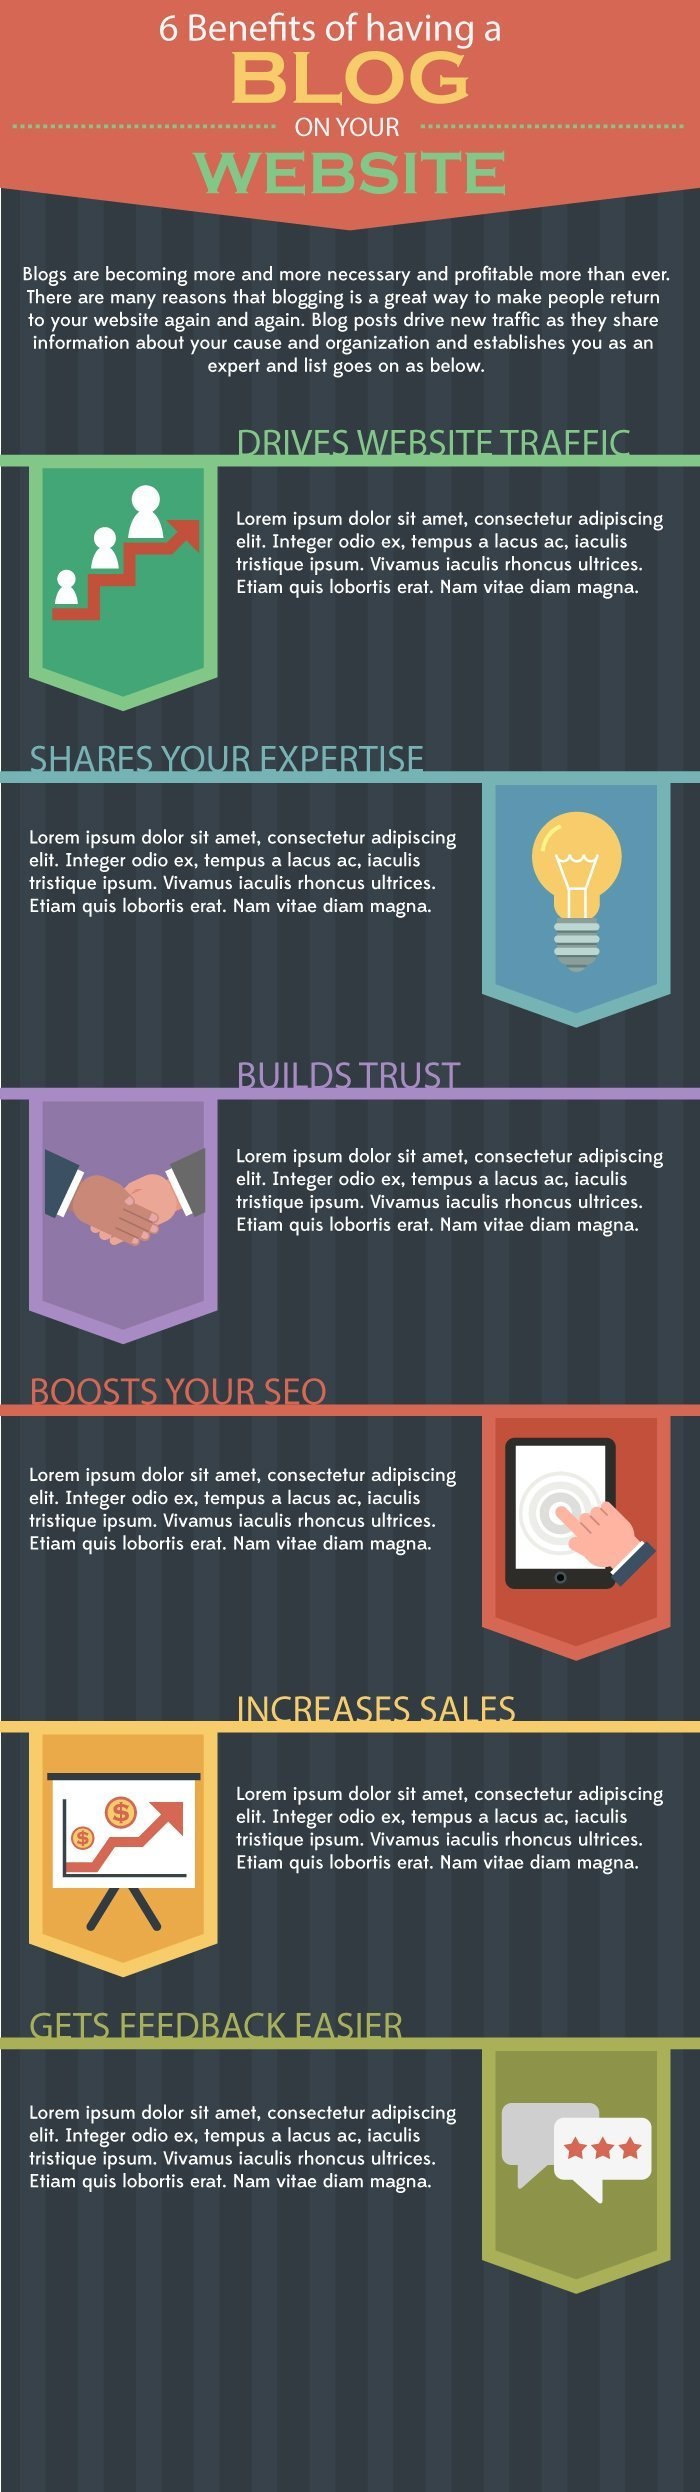 infographic_blog-on-your-website